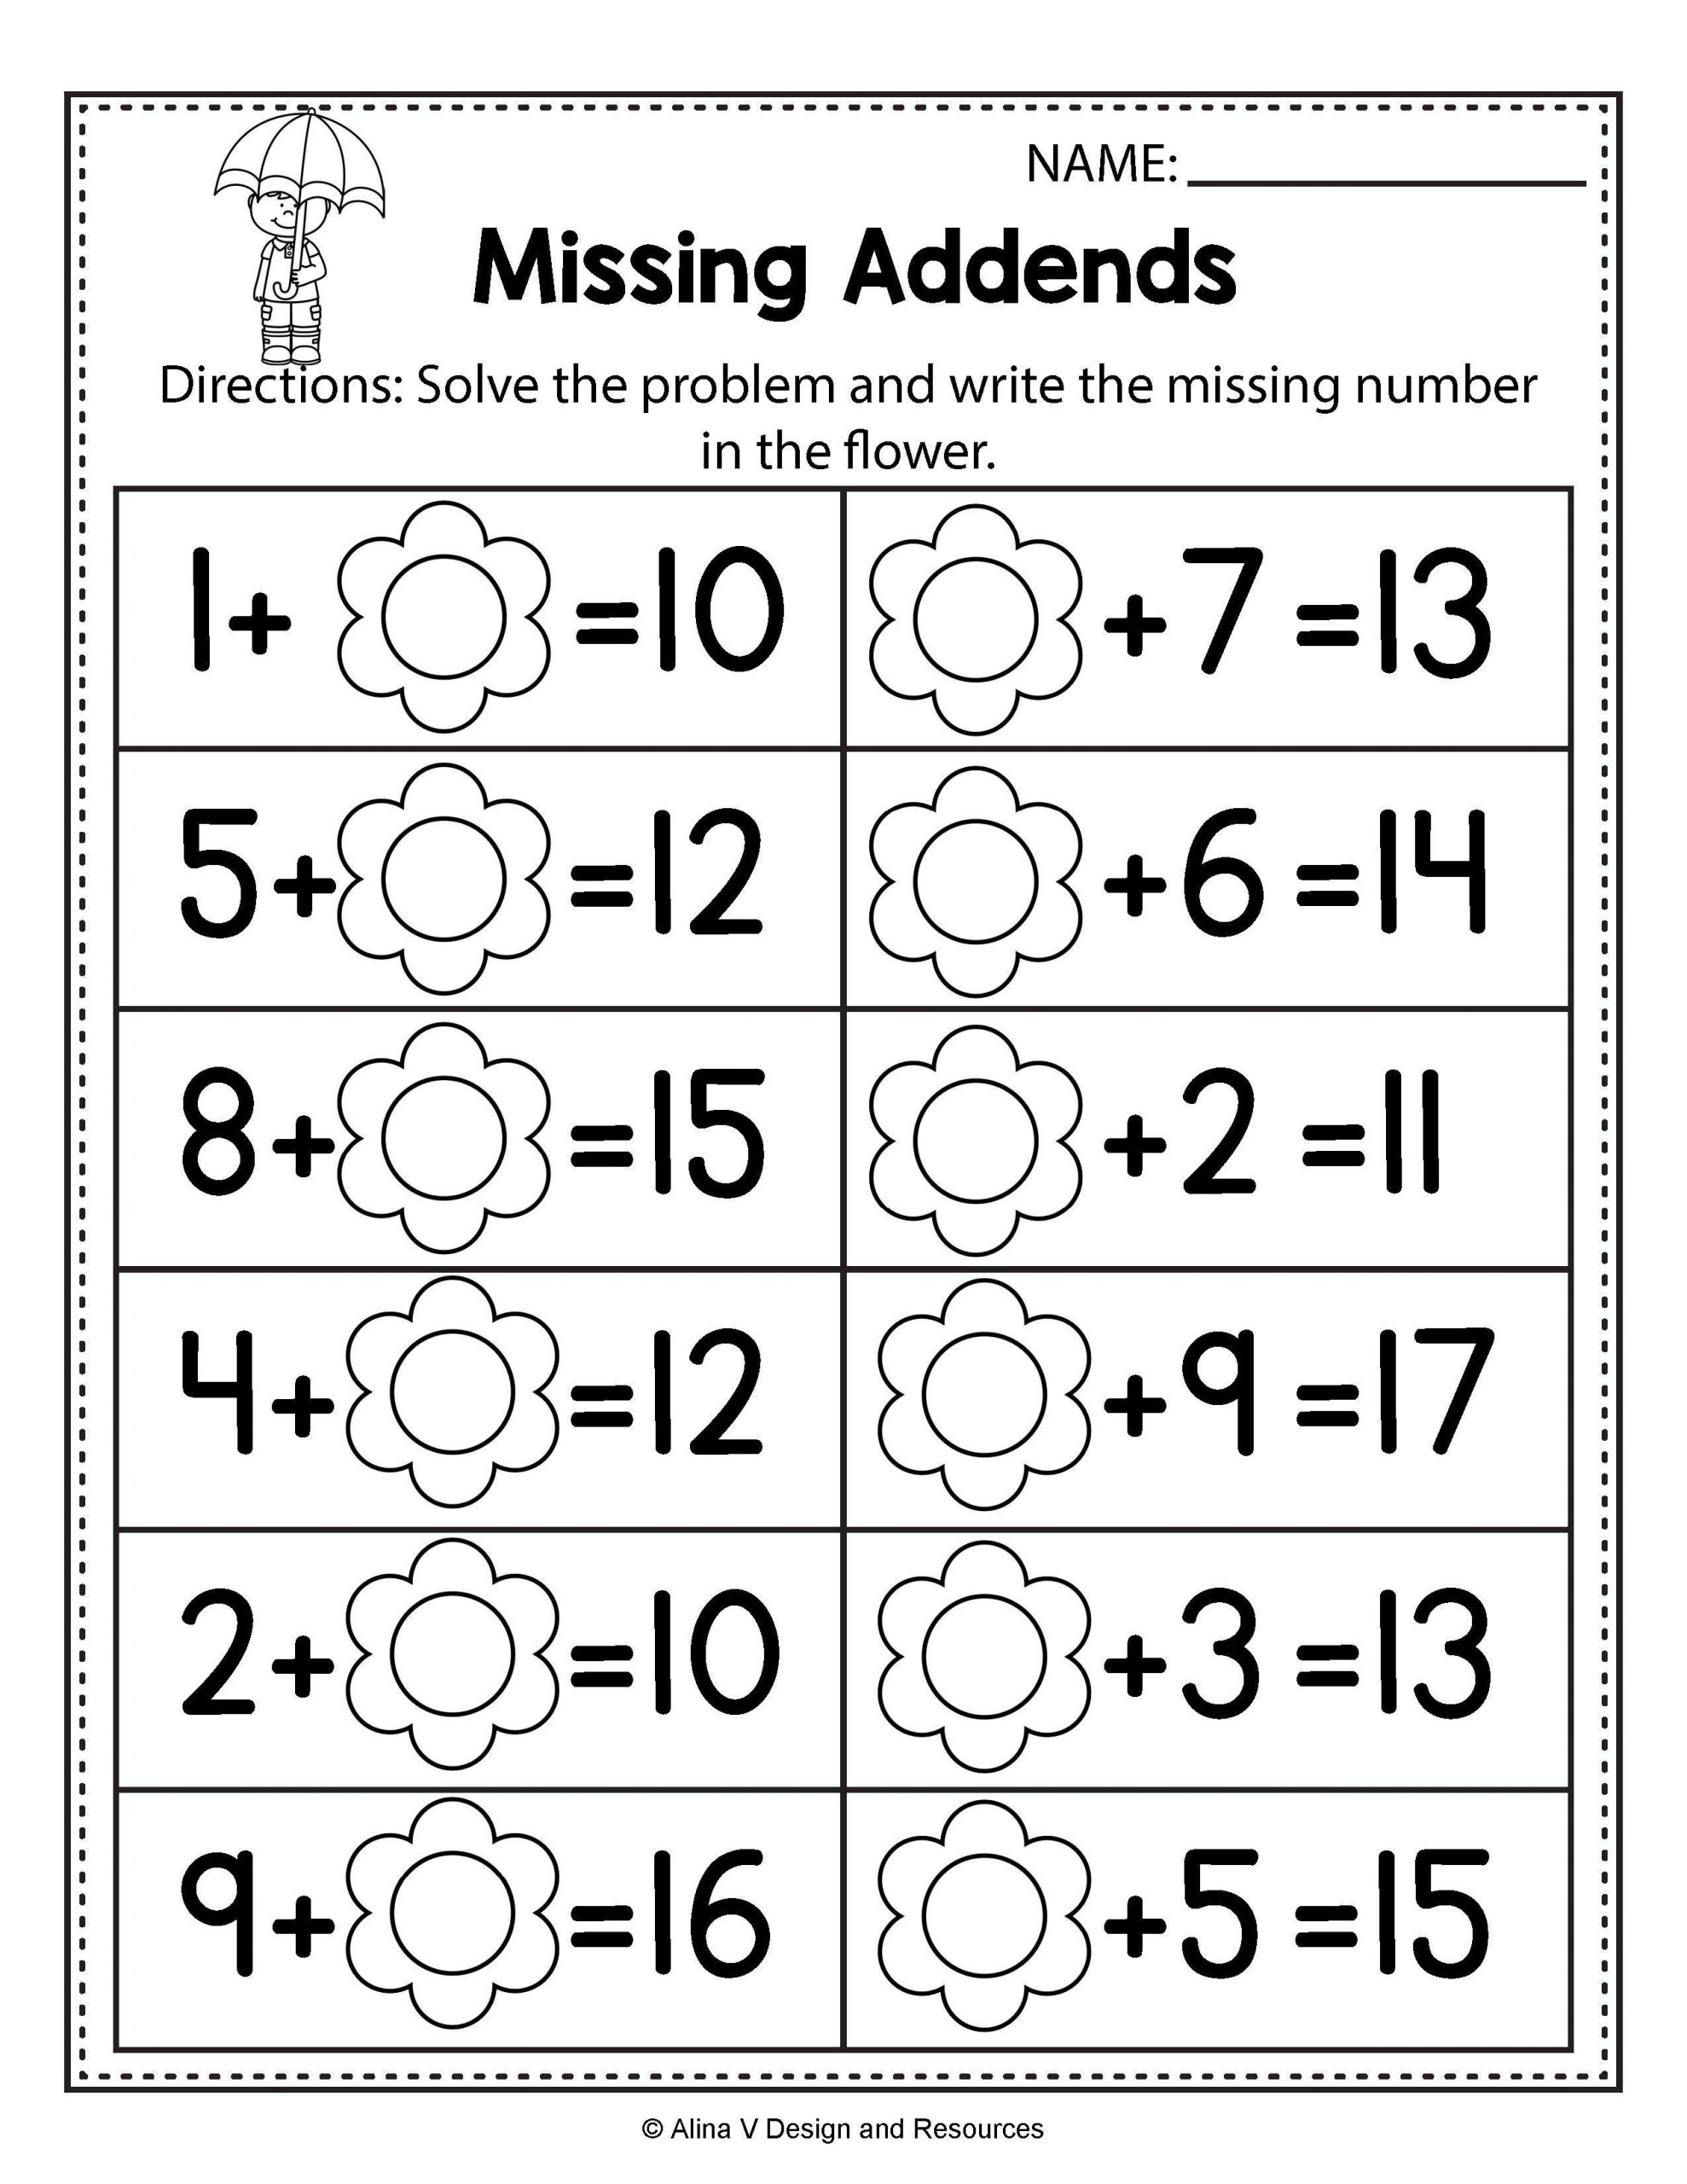 Missing Addends Worksheets 1st Grade Free Missing Addend Worksheets 1st Grade Free